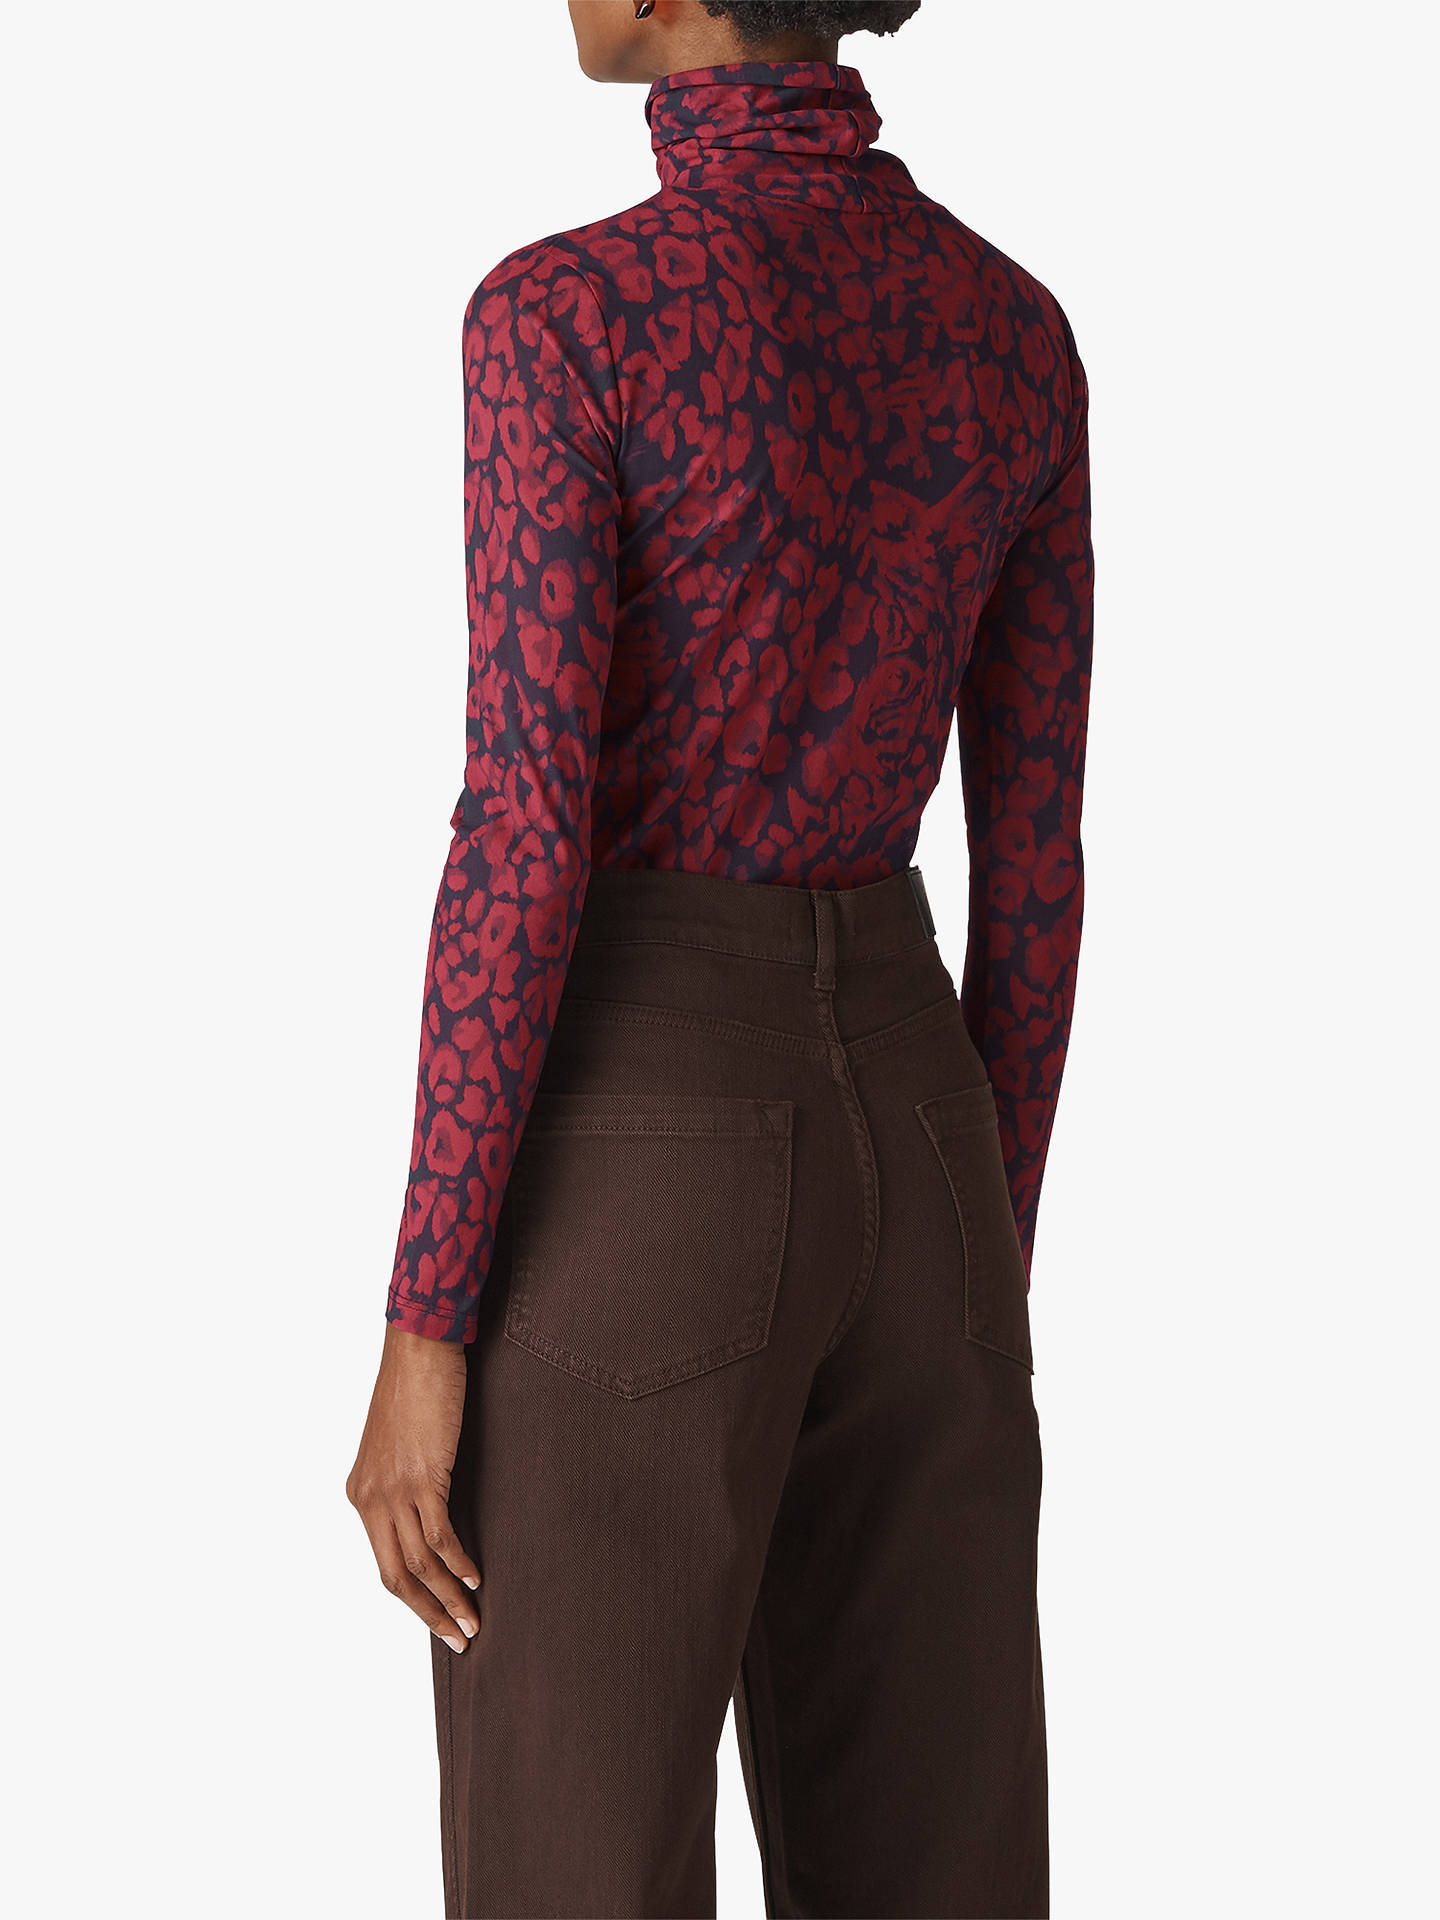 BuyWhistles Jungle Cat Mesh Top, Red/Multi, 10 Online at johnlewis.com